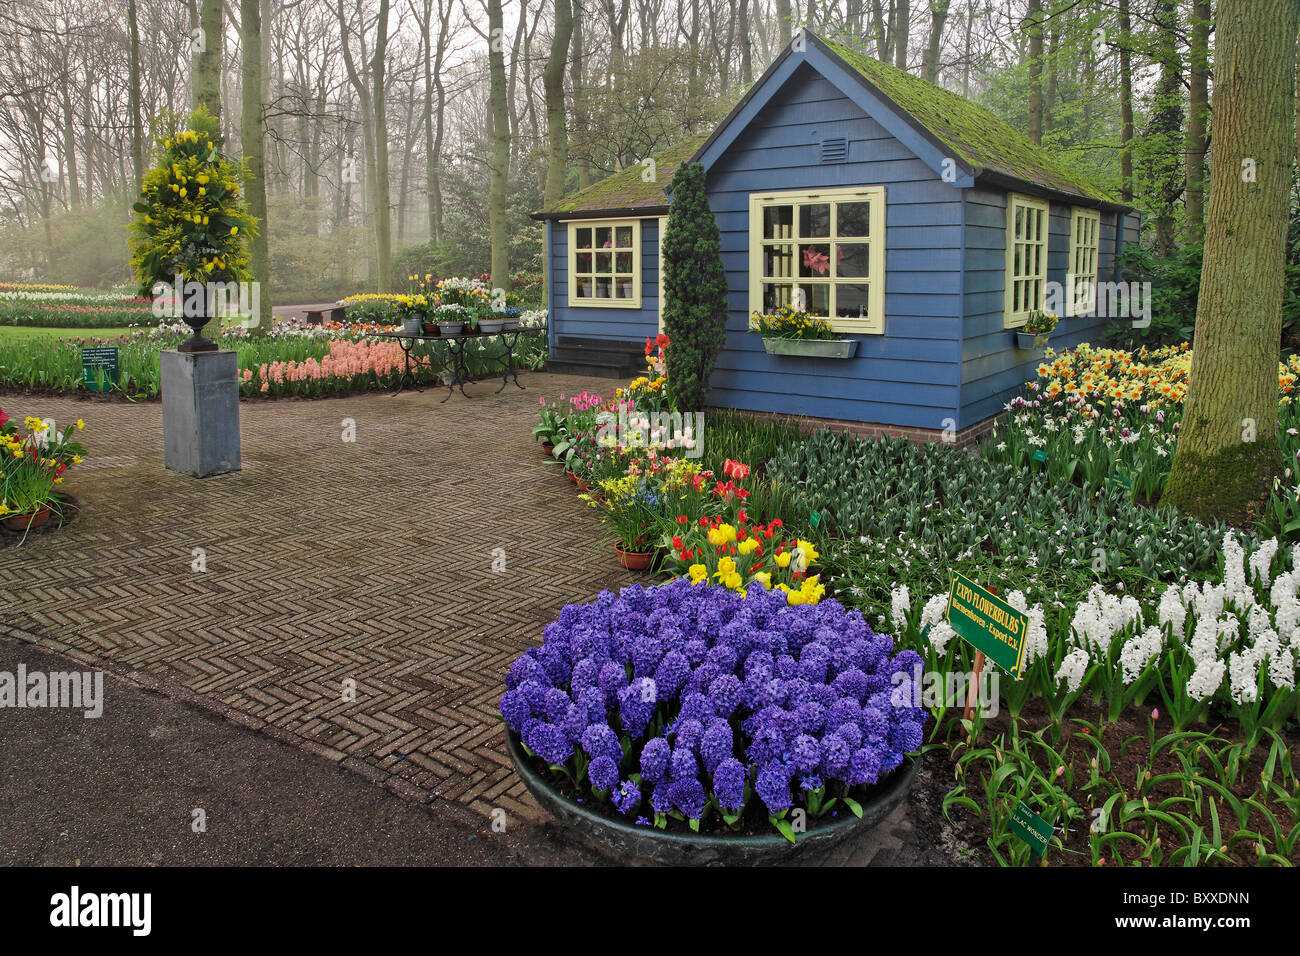 small cottage flower shop keukenhof gardens lisse netherlands stock photo royalty free image. Black Bedroom Furniture Sets. Home Design Ideas